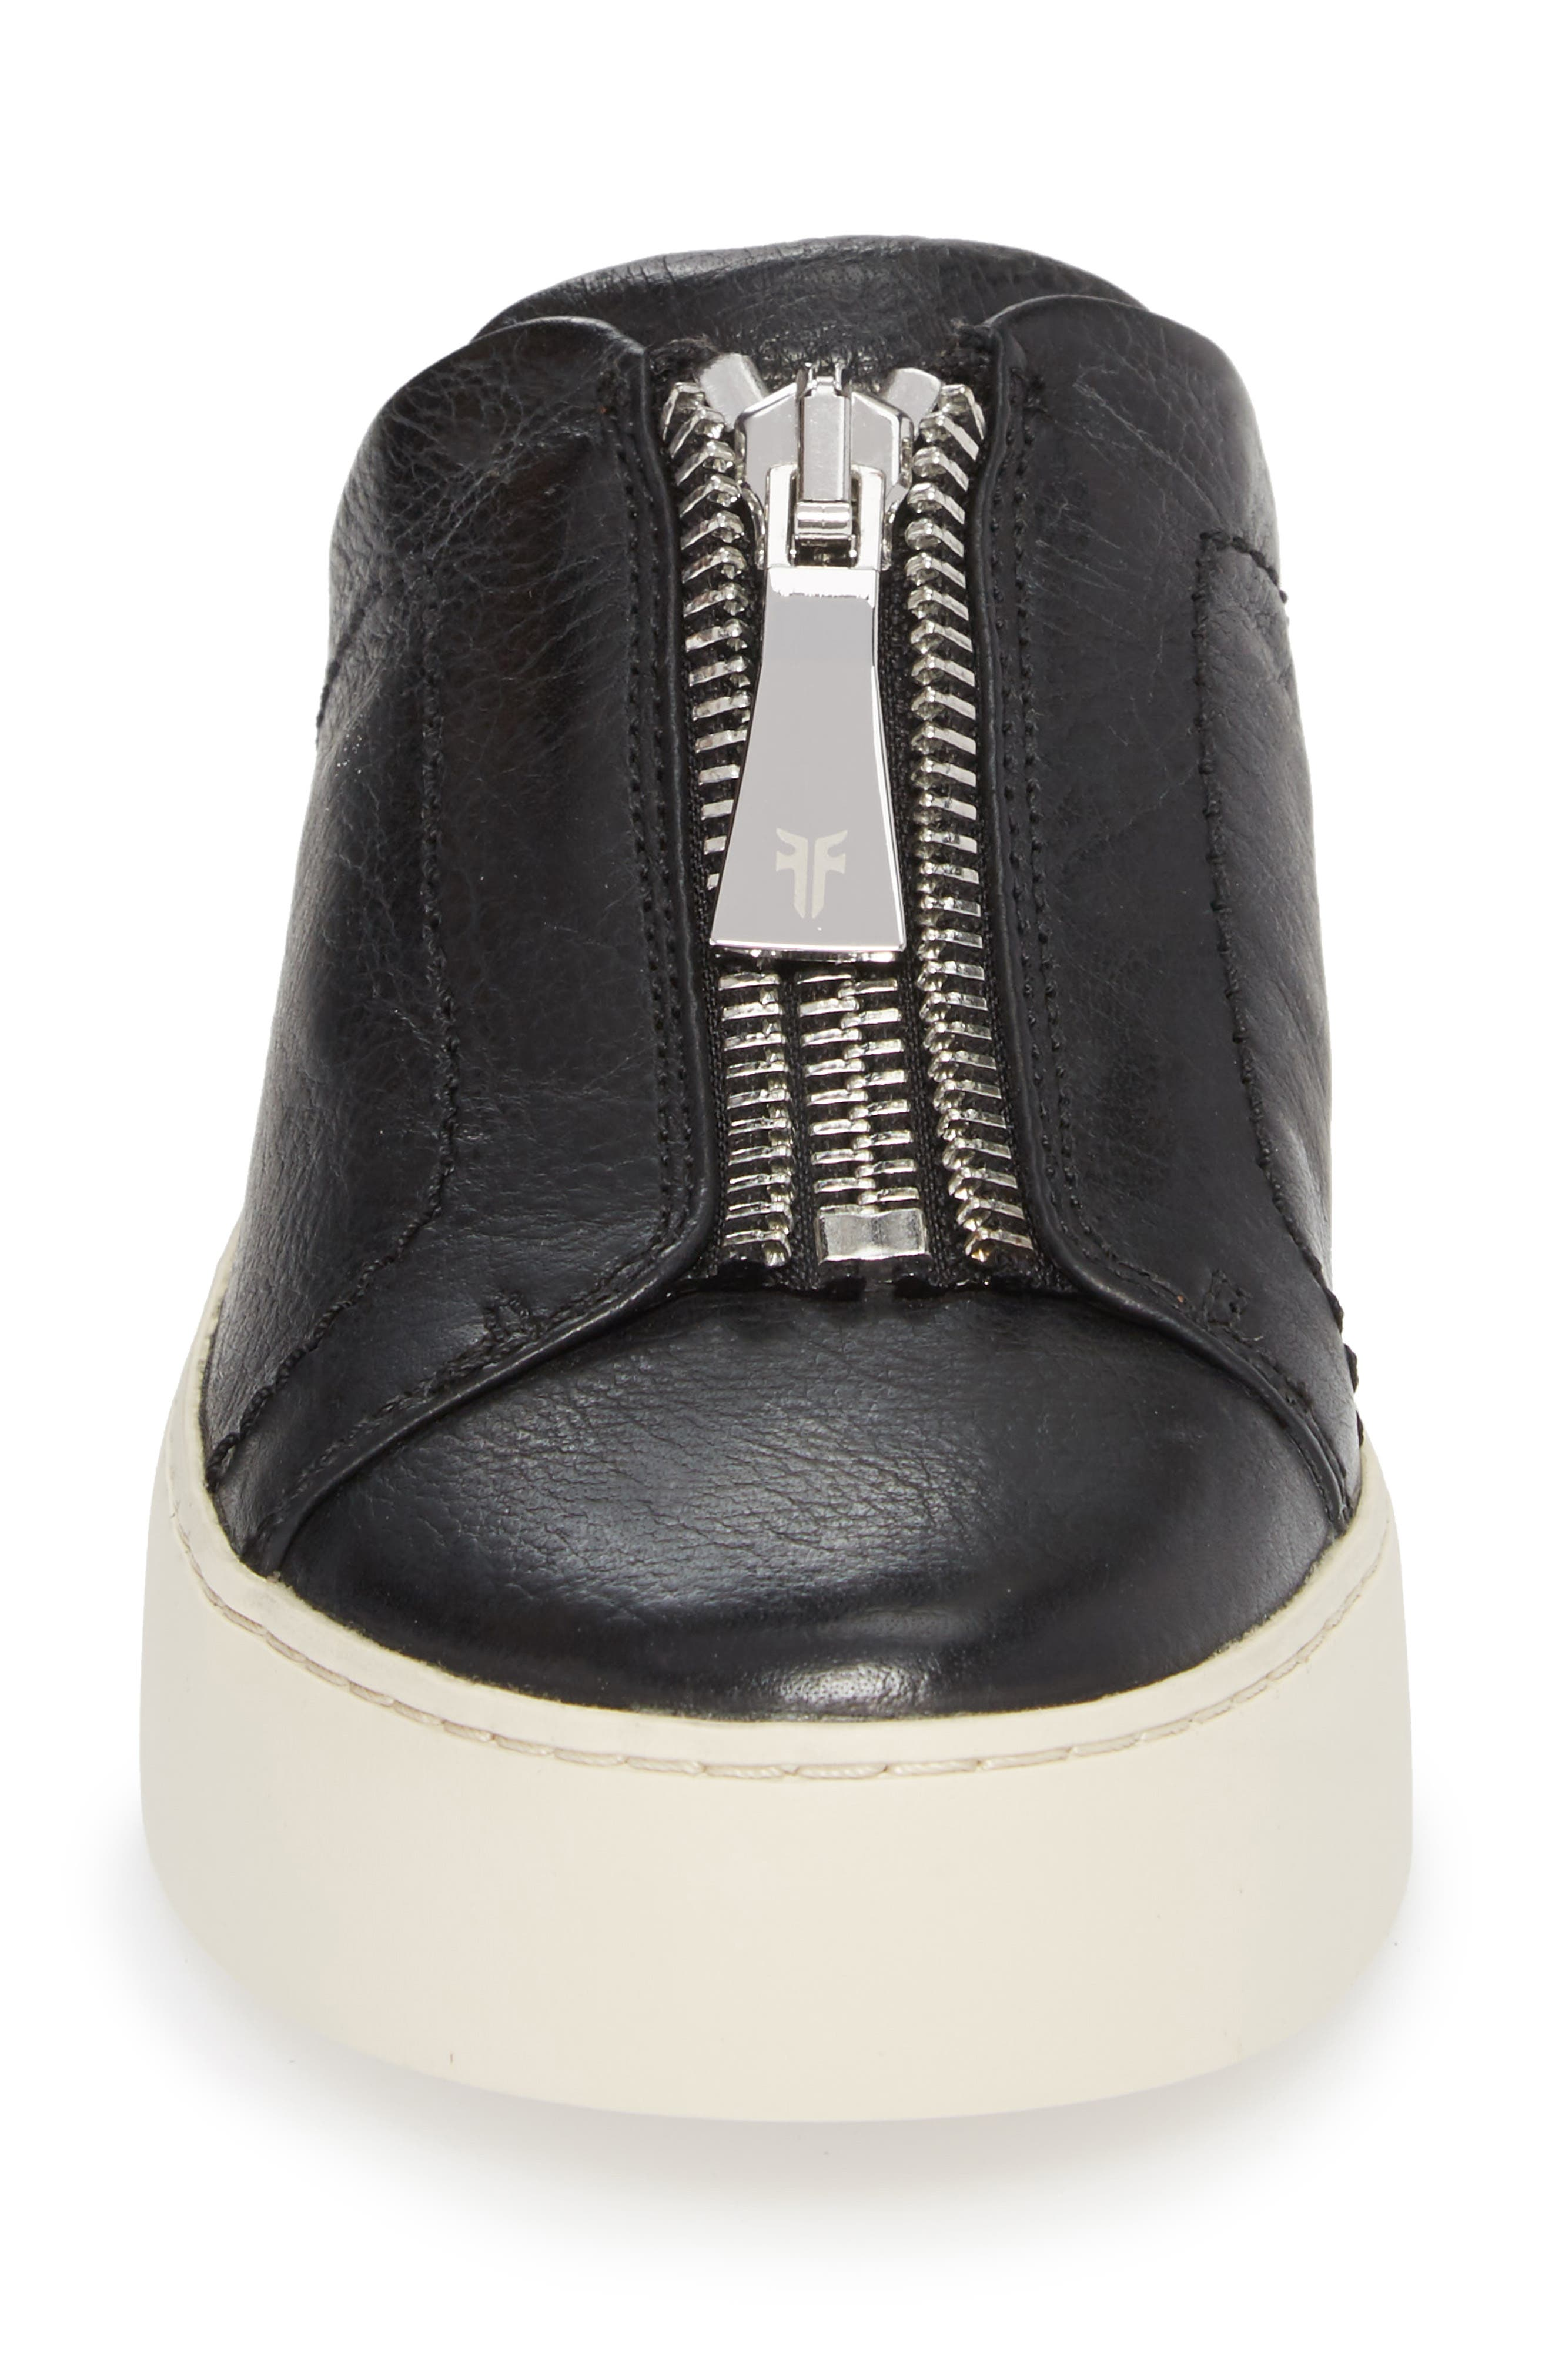 Lena Platform Sneaker Mule,                             Alternate thumbnail 5, color,                             Black Leather